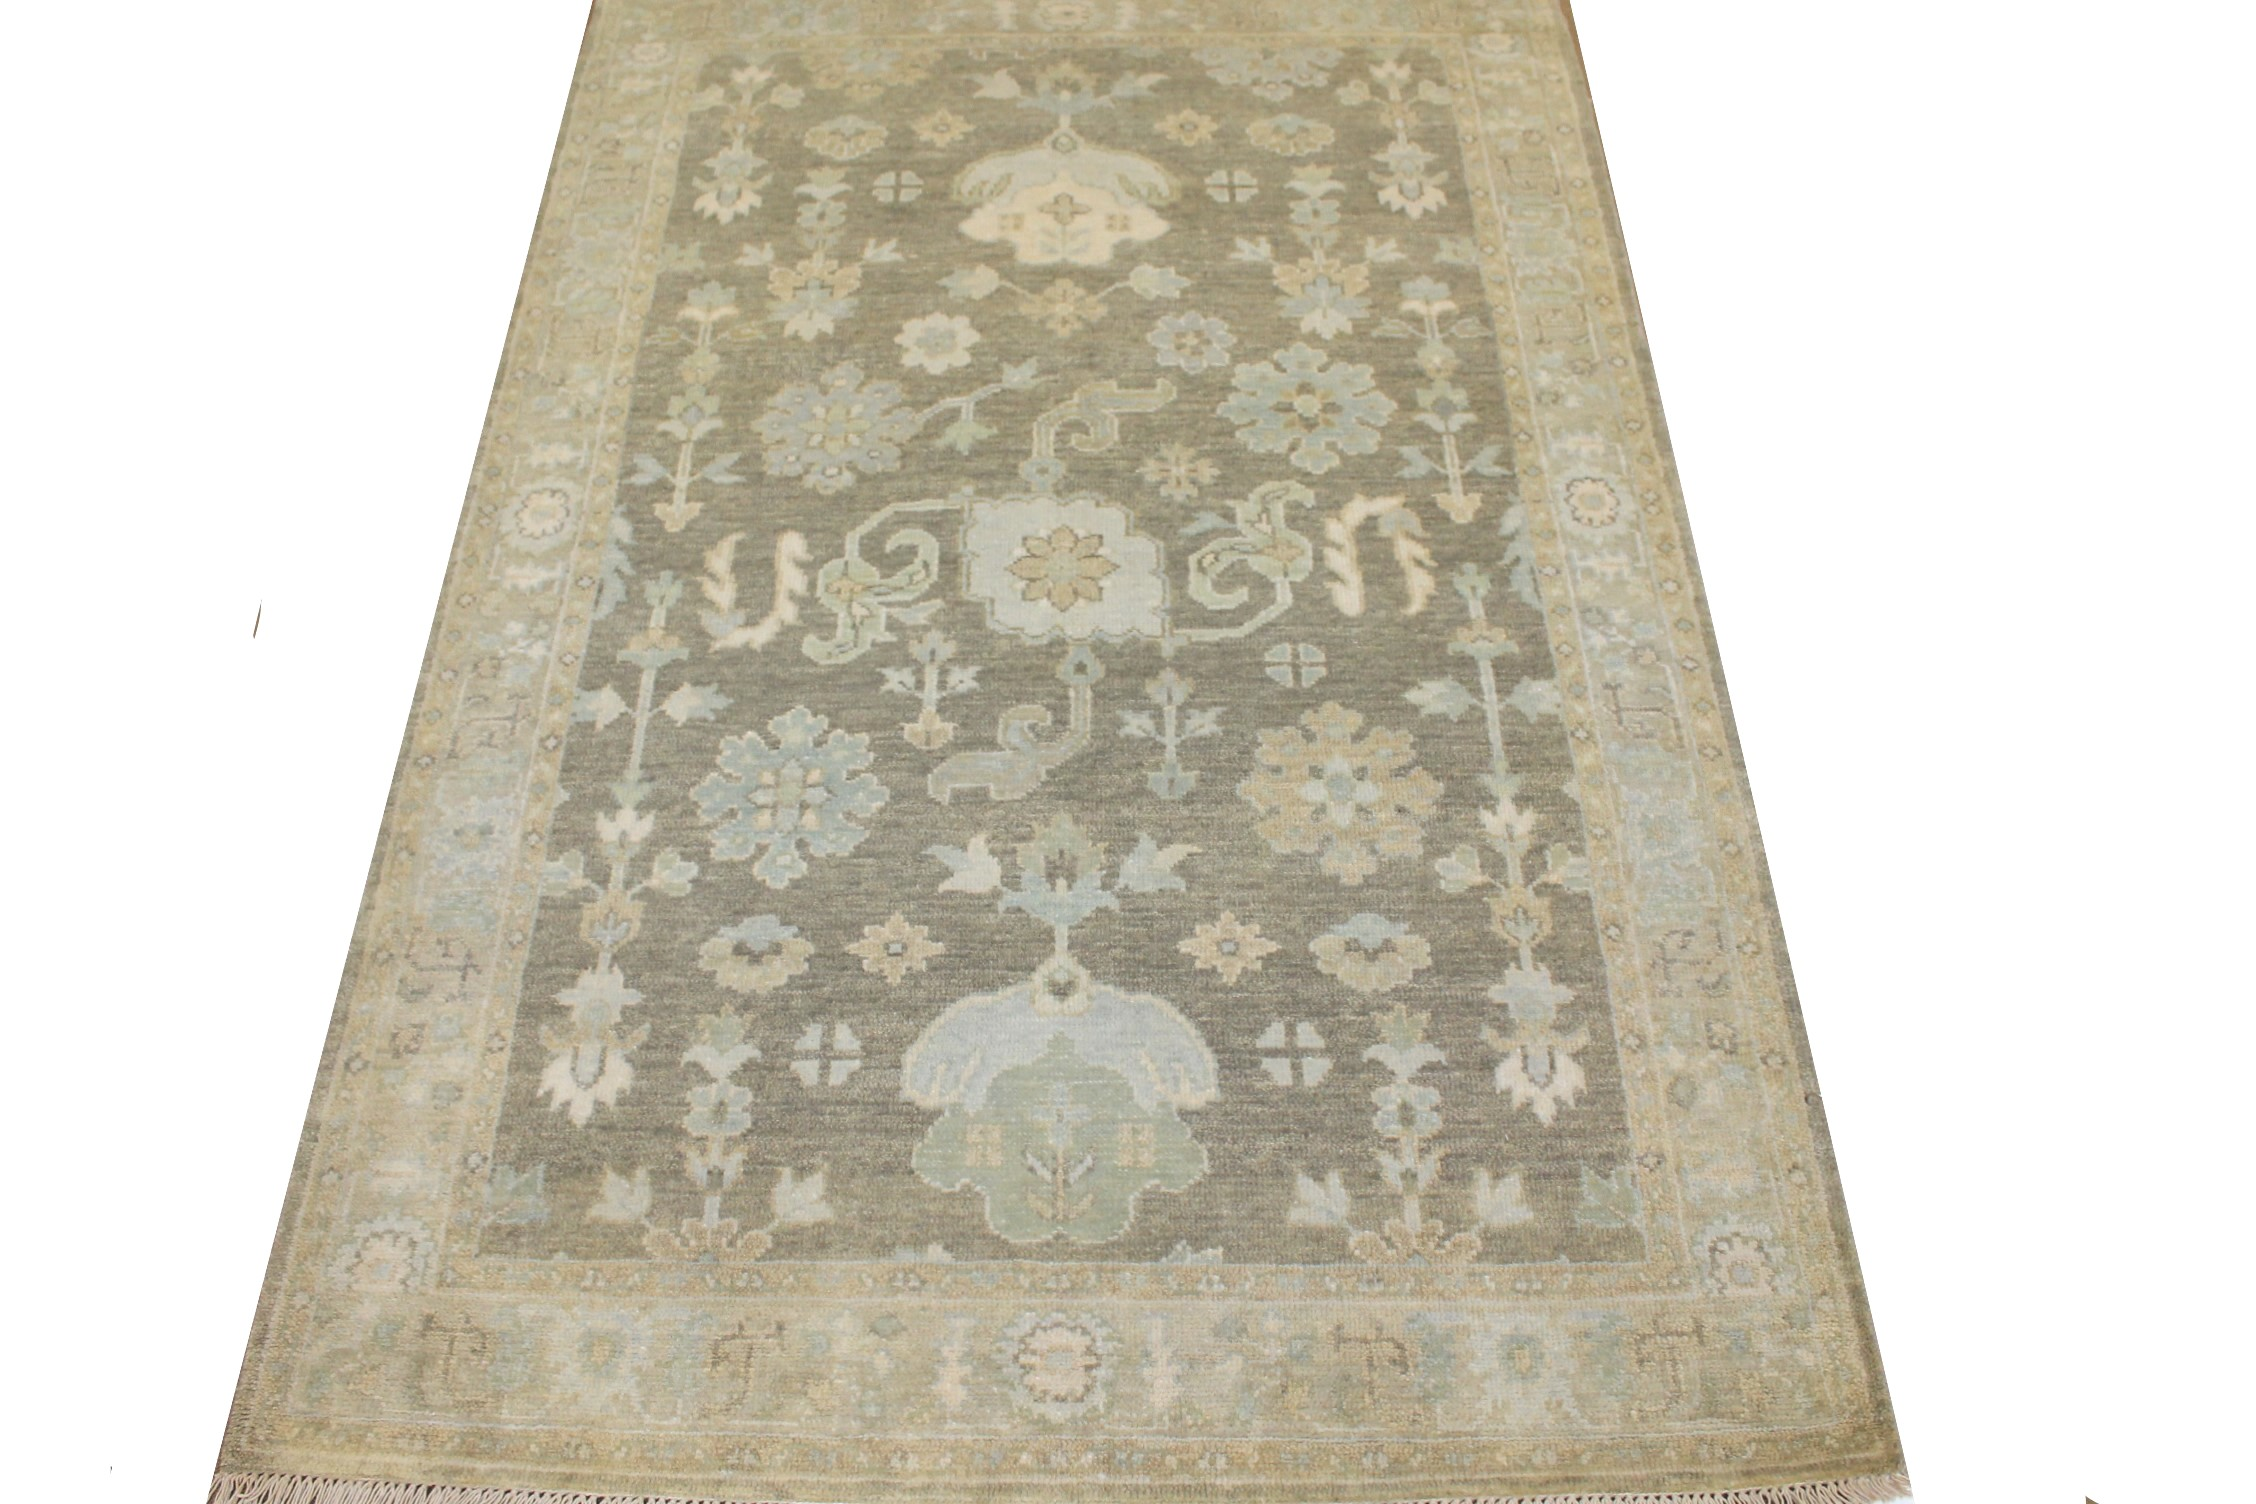 4x6 Oushak Hand Knotted Wool Area Rug - MR024882